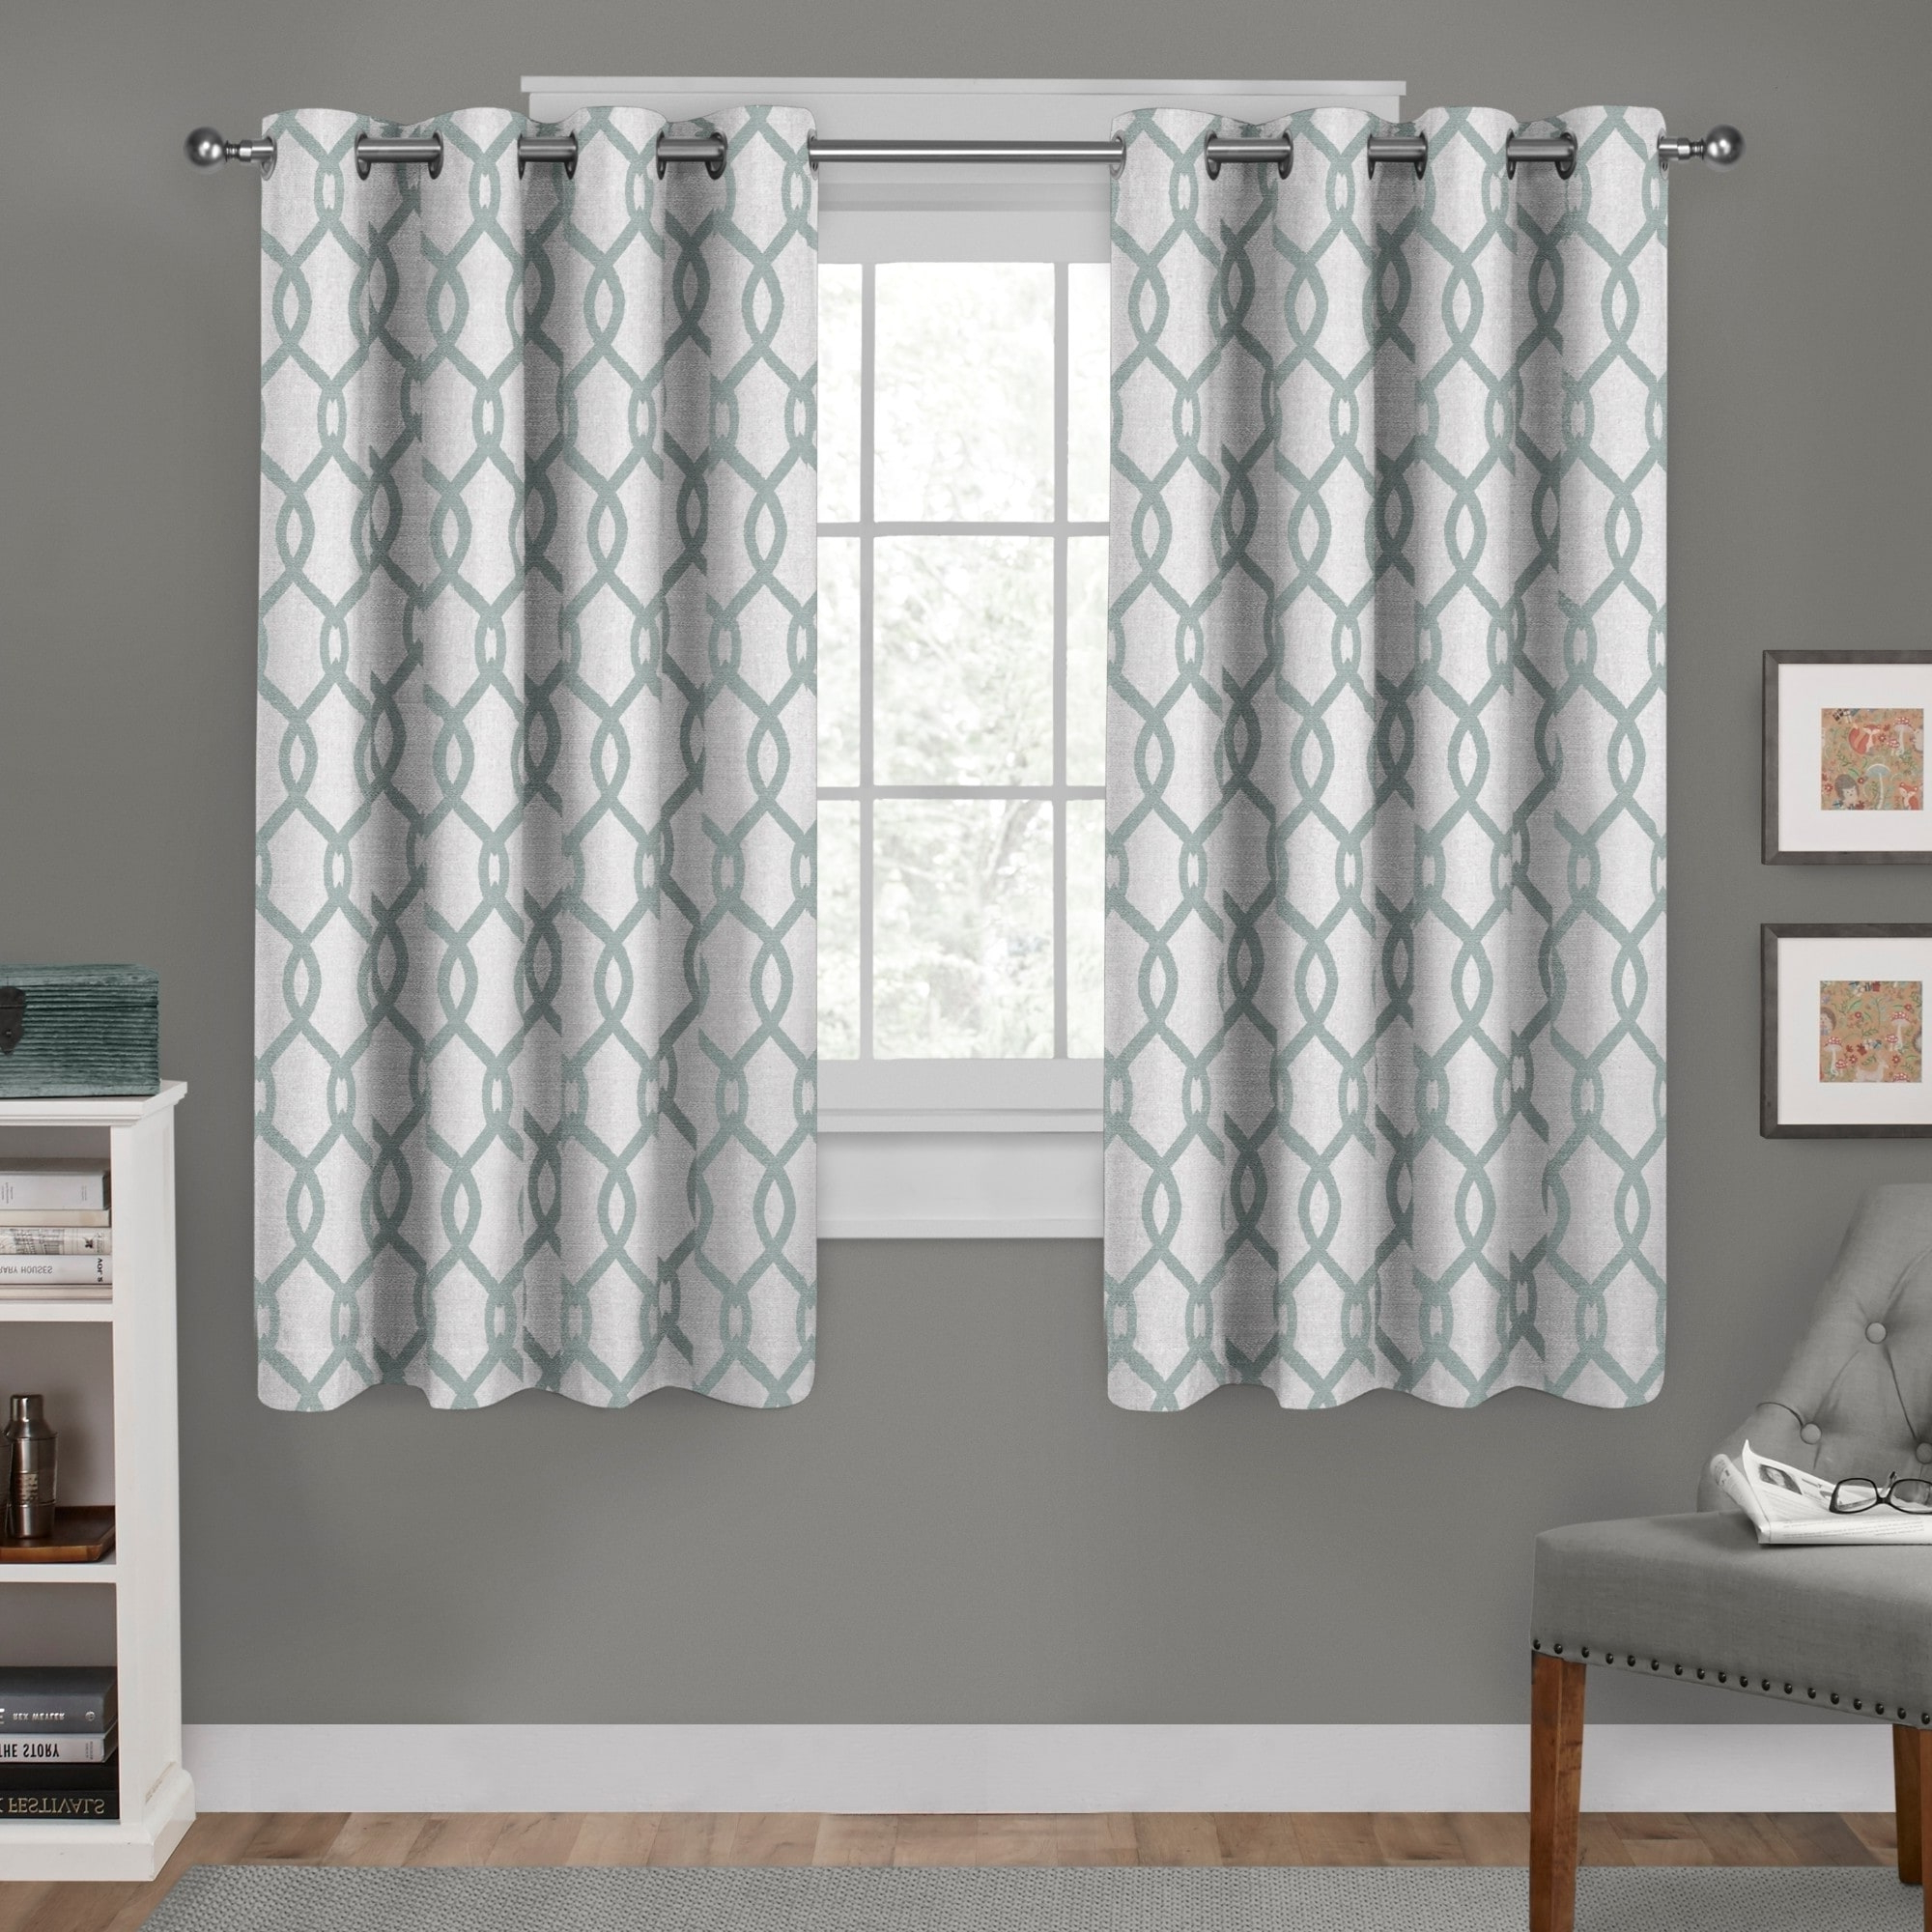 Favorite Exclusive Home Kochi Linen Blend Window Curtain Panel Pair With Grommet Top With Regard To Kochi Linen Blend Window Grommet Top Curtain Panel Pairs (View 5 of 20)